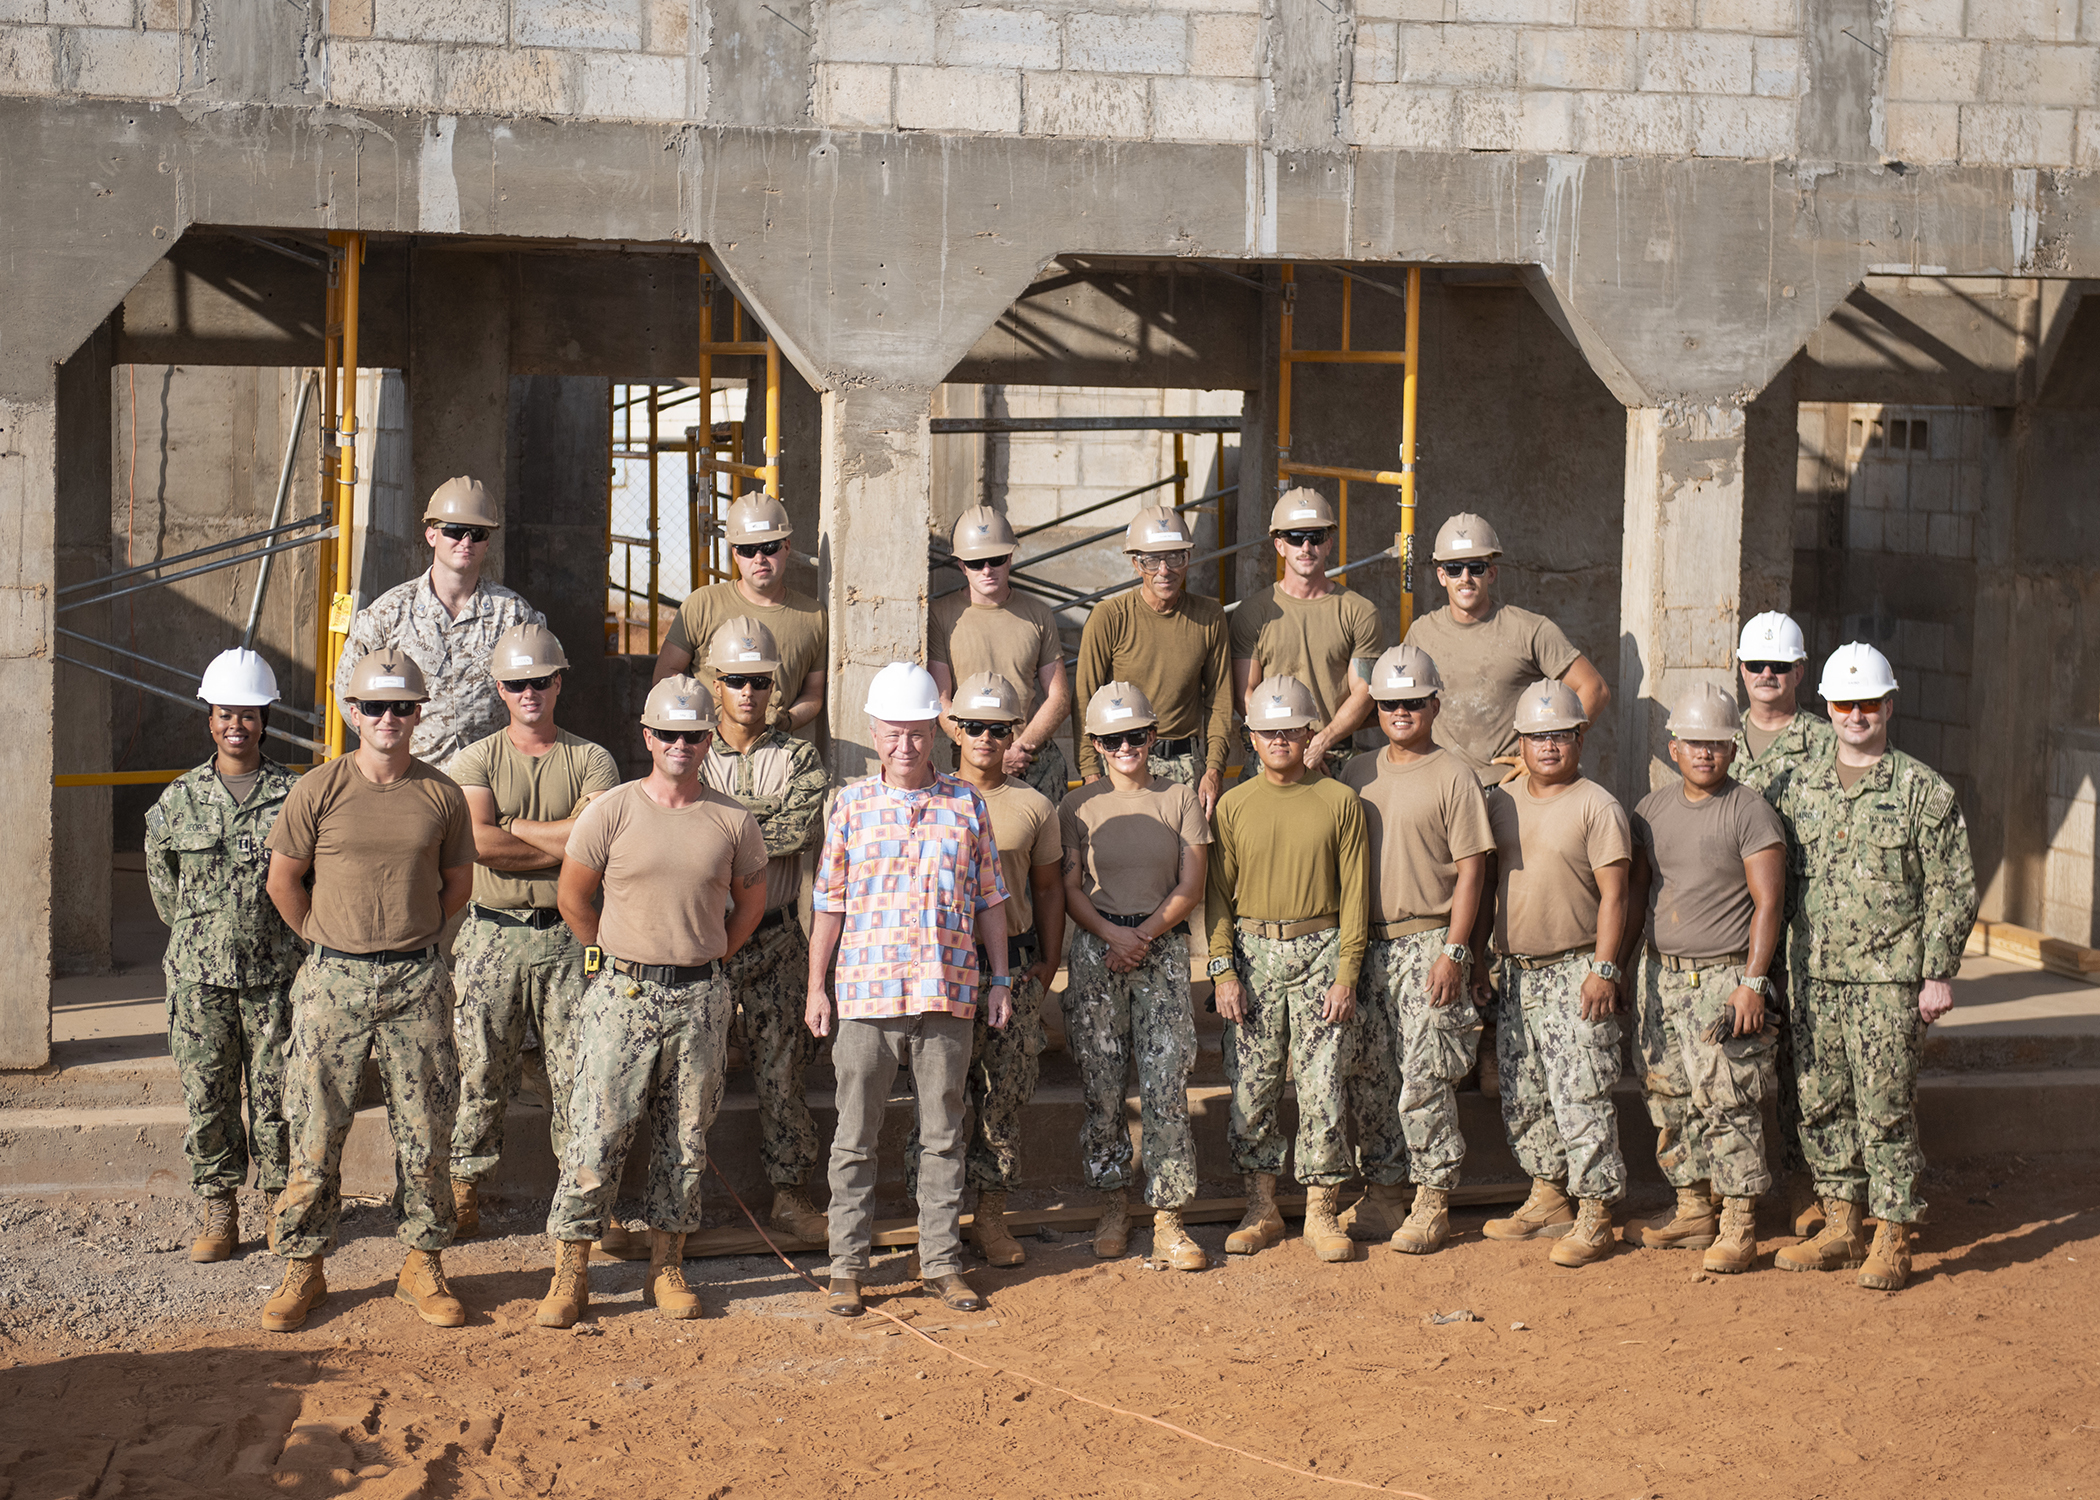 Amb. Larry André Jr., U.S. Ambassador to the Republic of Djibouti, poses for a photo with U.S. Navy Sailors from Naval Mobile Construction Battalions 1 and 18, assigned to Combined Joint Task Force-Horn of Africa, Camp Lemonnier, Djibouti, during a visit to the construction site of the future Ali Oune, Djibouti, Women's Medical Clinic, Dec. 3, 2018. Slated for completion by January 2019, the clinic is intended to enhance the Ministry of Health for Djibouti's ability to provide basic medical, birth and after care to the Ali Oune village and its more than 1,000 residents and rural neighbors. (U.S. Air Force photo by Tech. Sgt. Shawn Nickel)